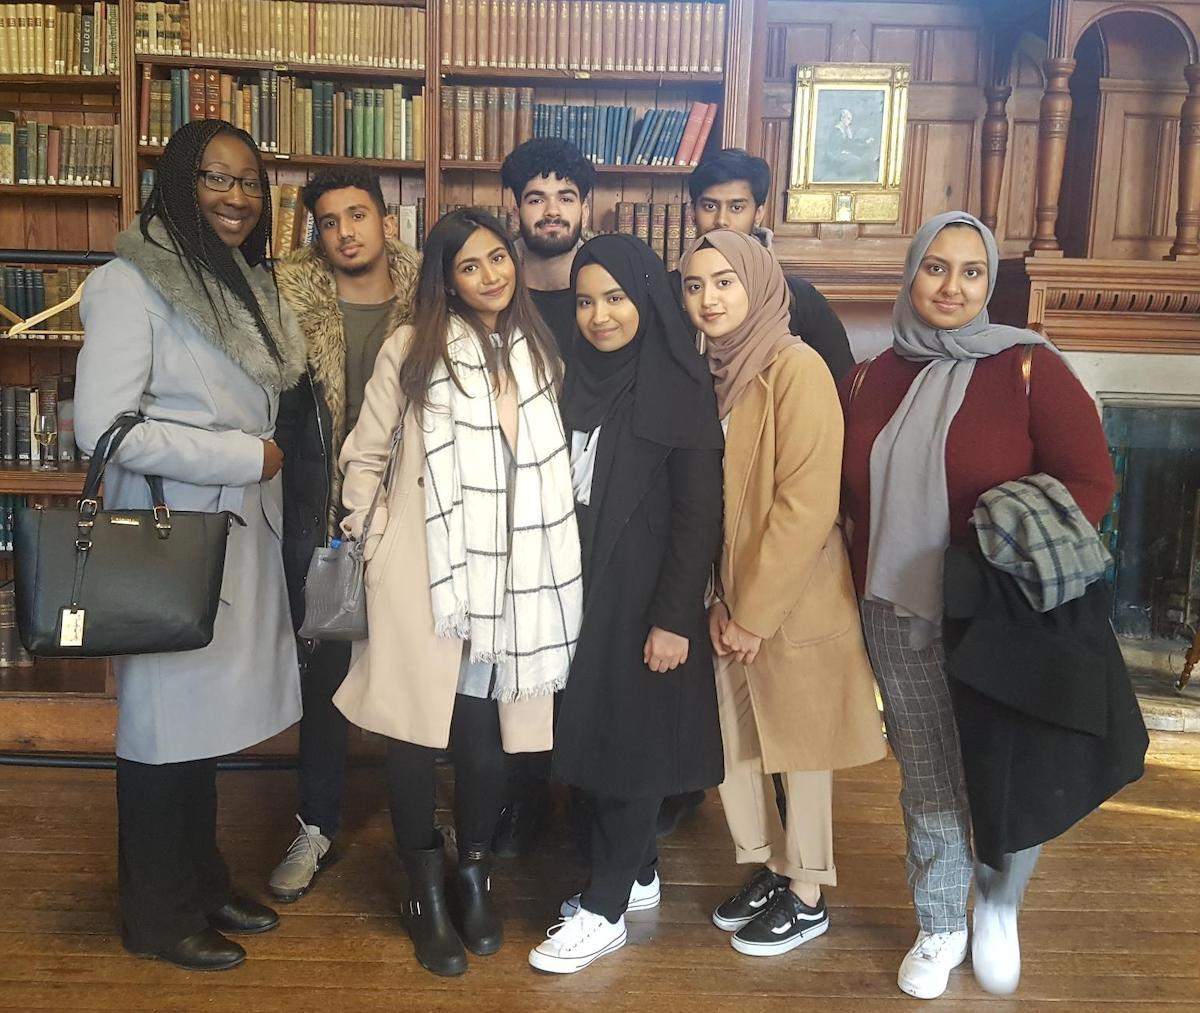 Haverstock School Sixth Form Students Visit Girton College, Cambridge study room